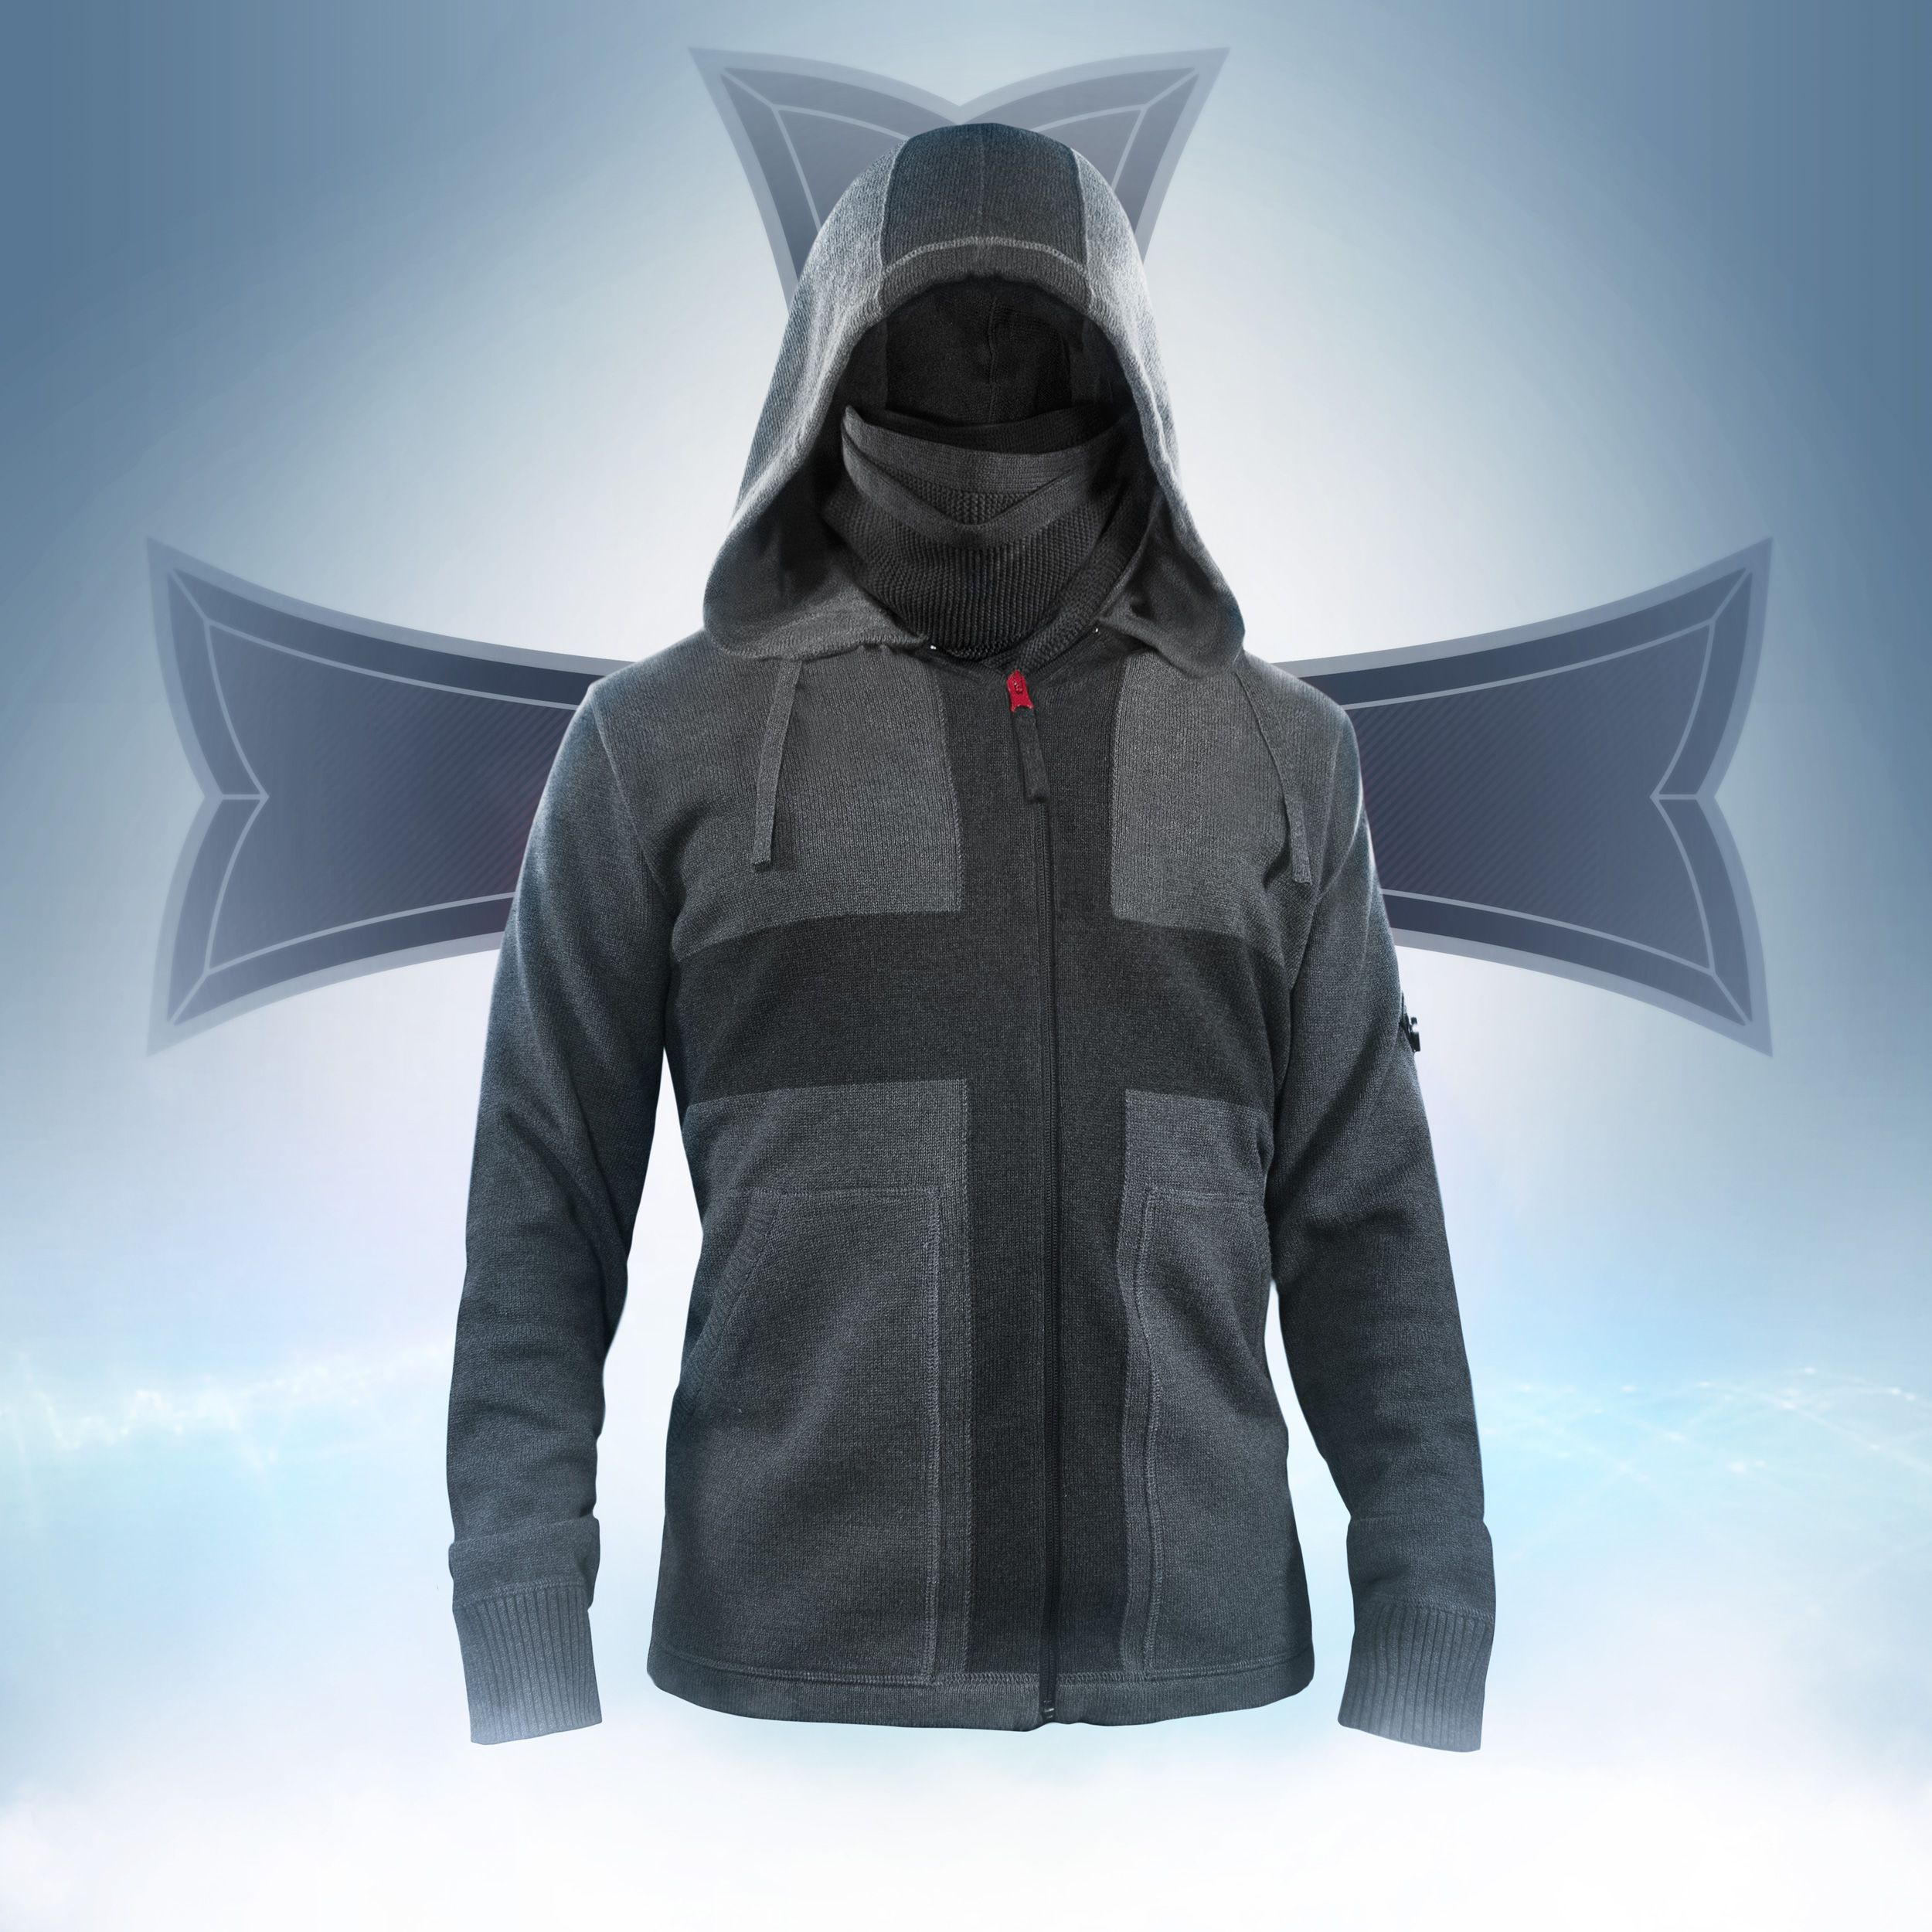 the assassin 39 s creed rogue themed crusade hoodie and. Black Bedroom Furniture Sets. Home Design Ideas